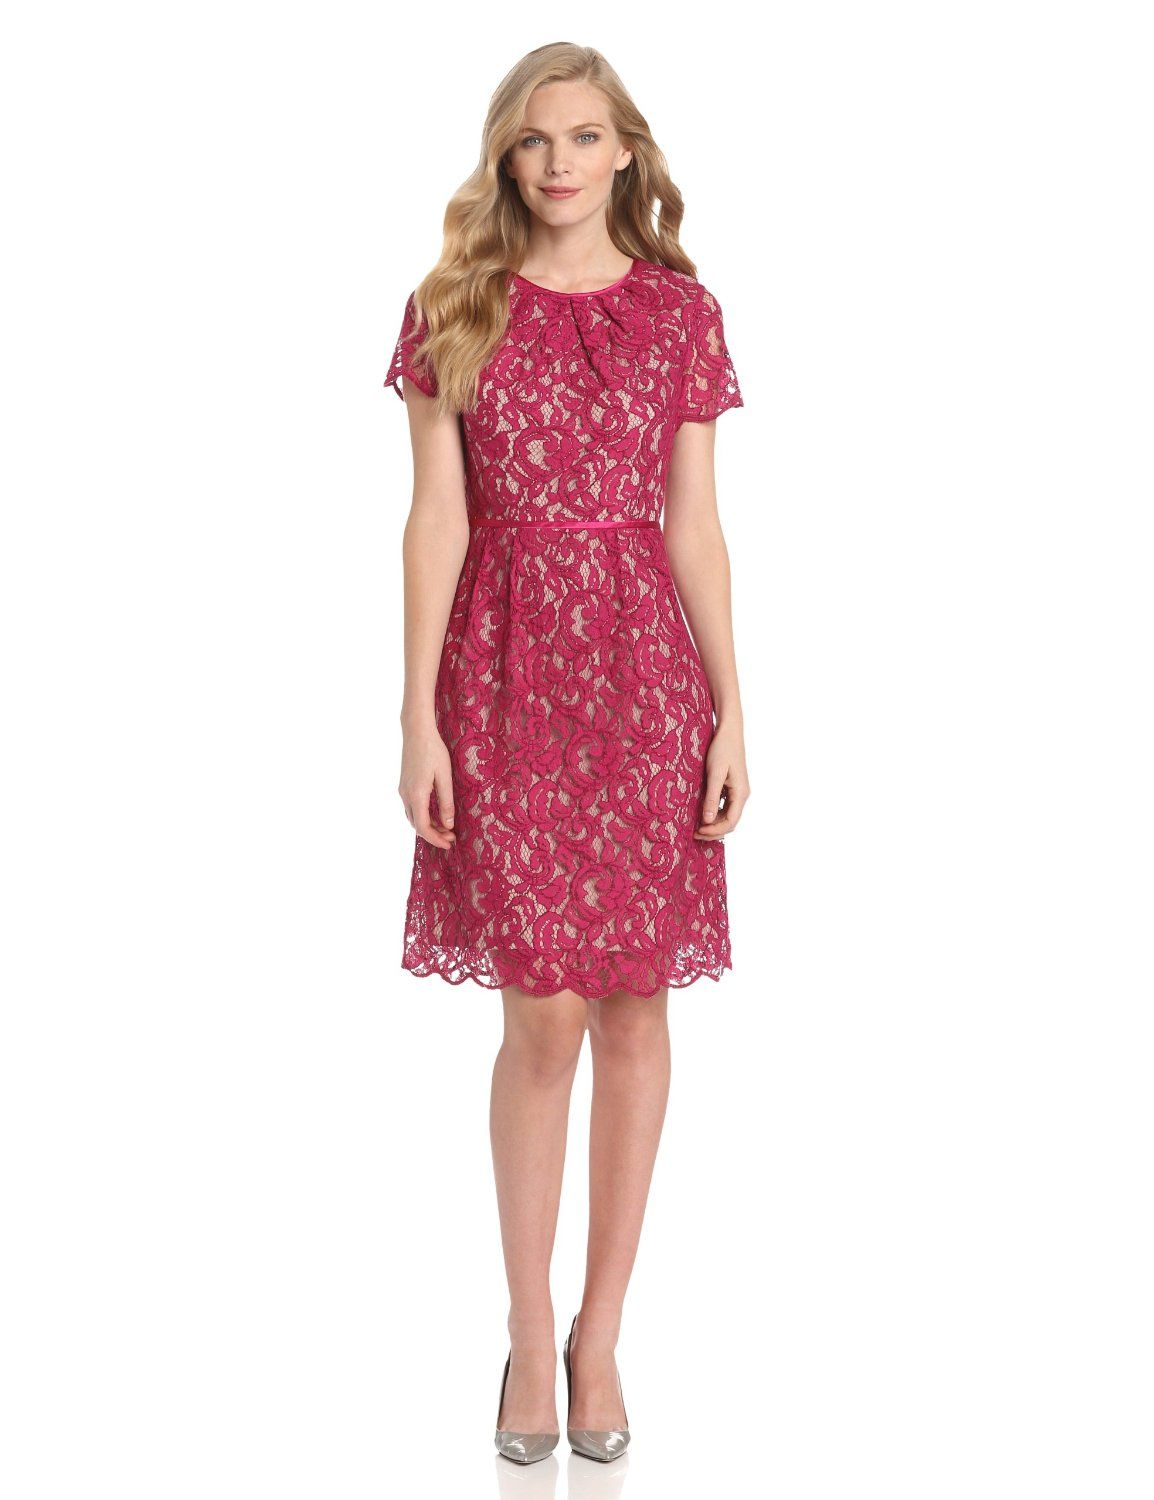 Party dresses for women over 40 nowruz